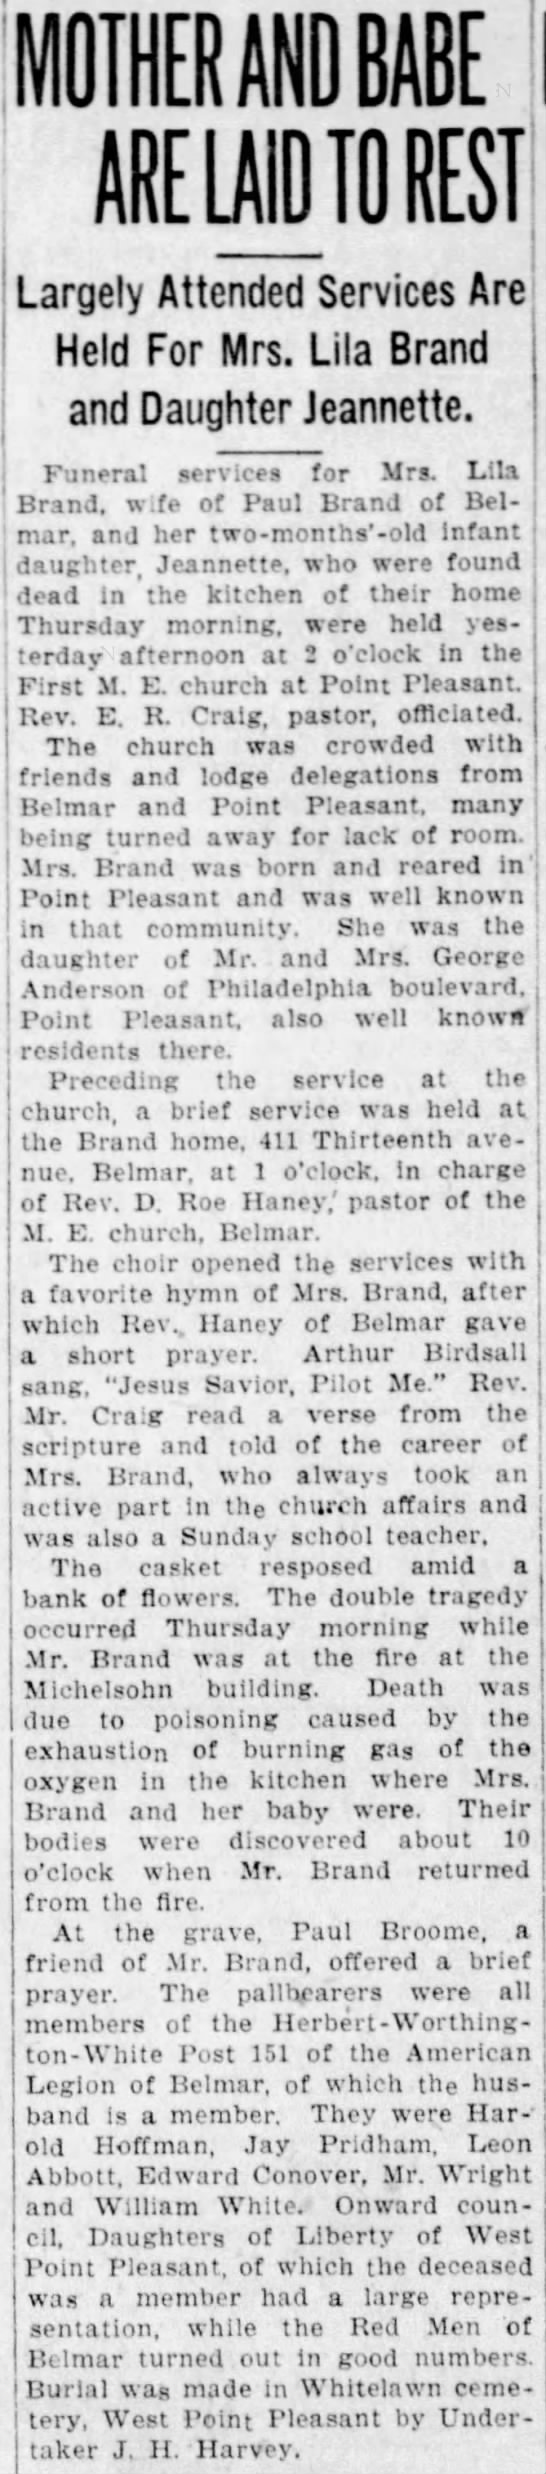 Funeral of Lila Anderson Brand and daughter, Jeanette